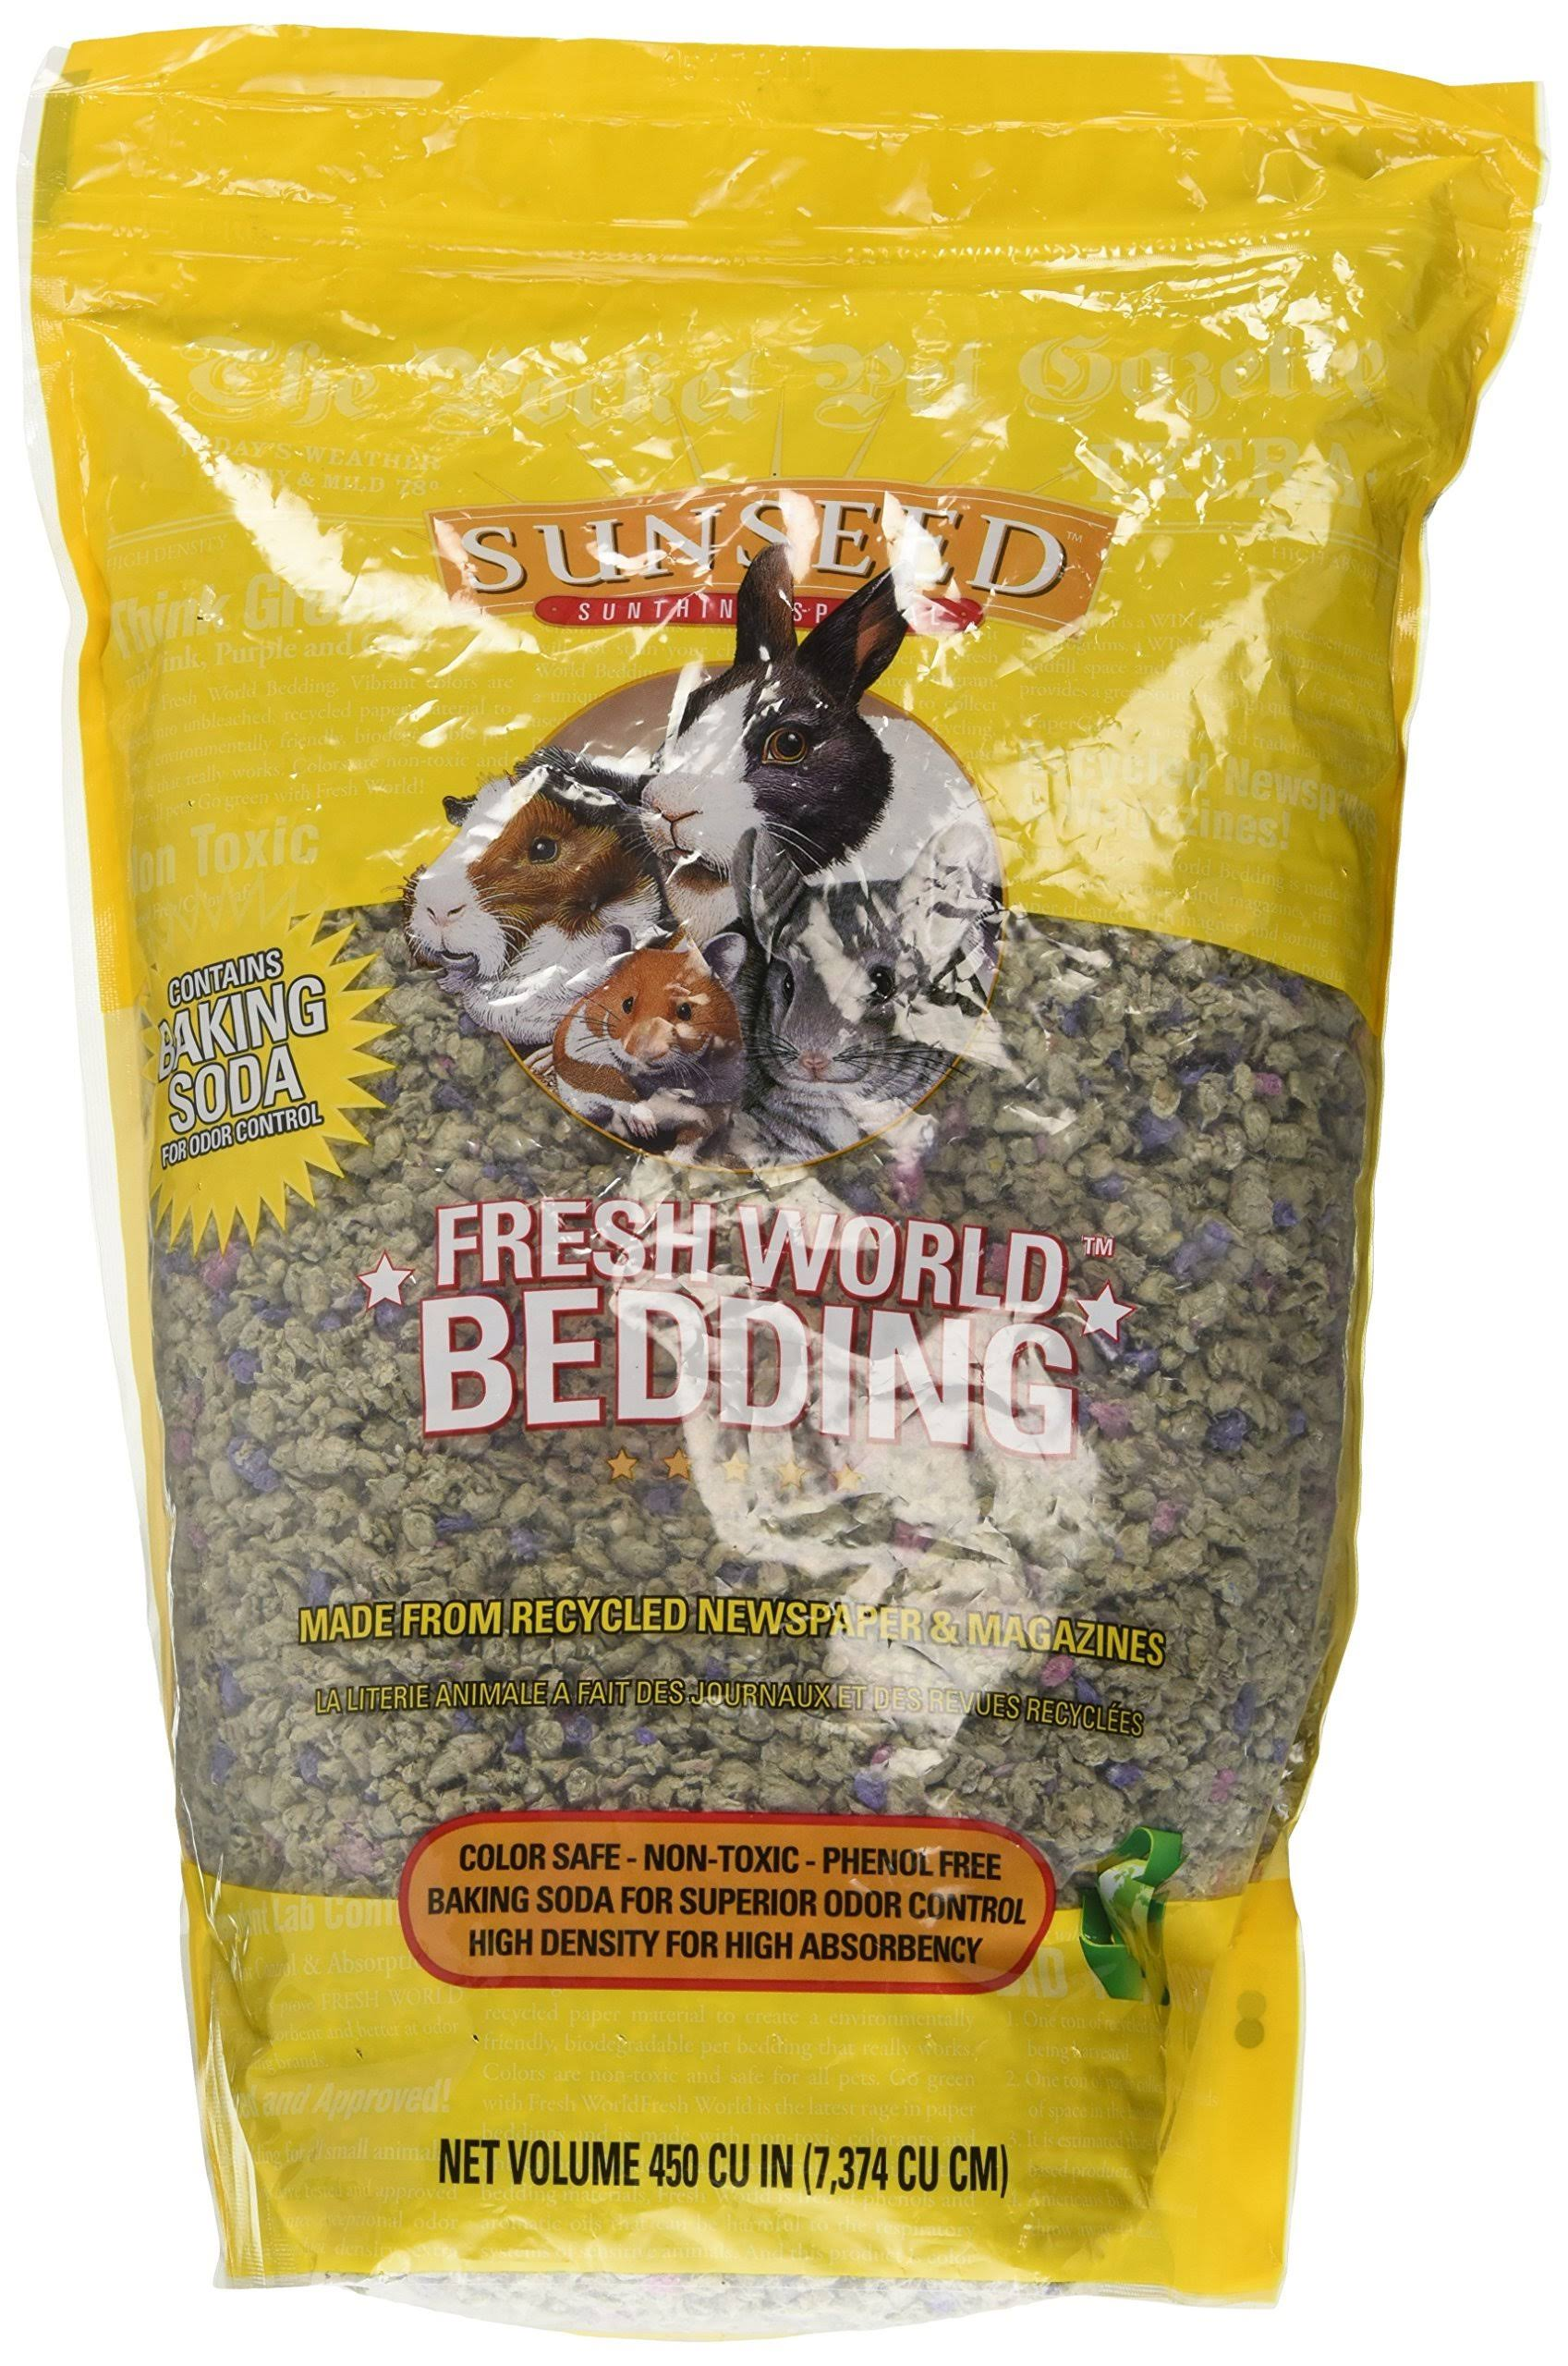 Sun Seed Company SSS18220 Fresh World Bedding Gray with Flecks - 4.25lbs